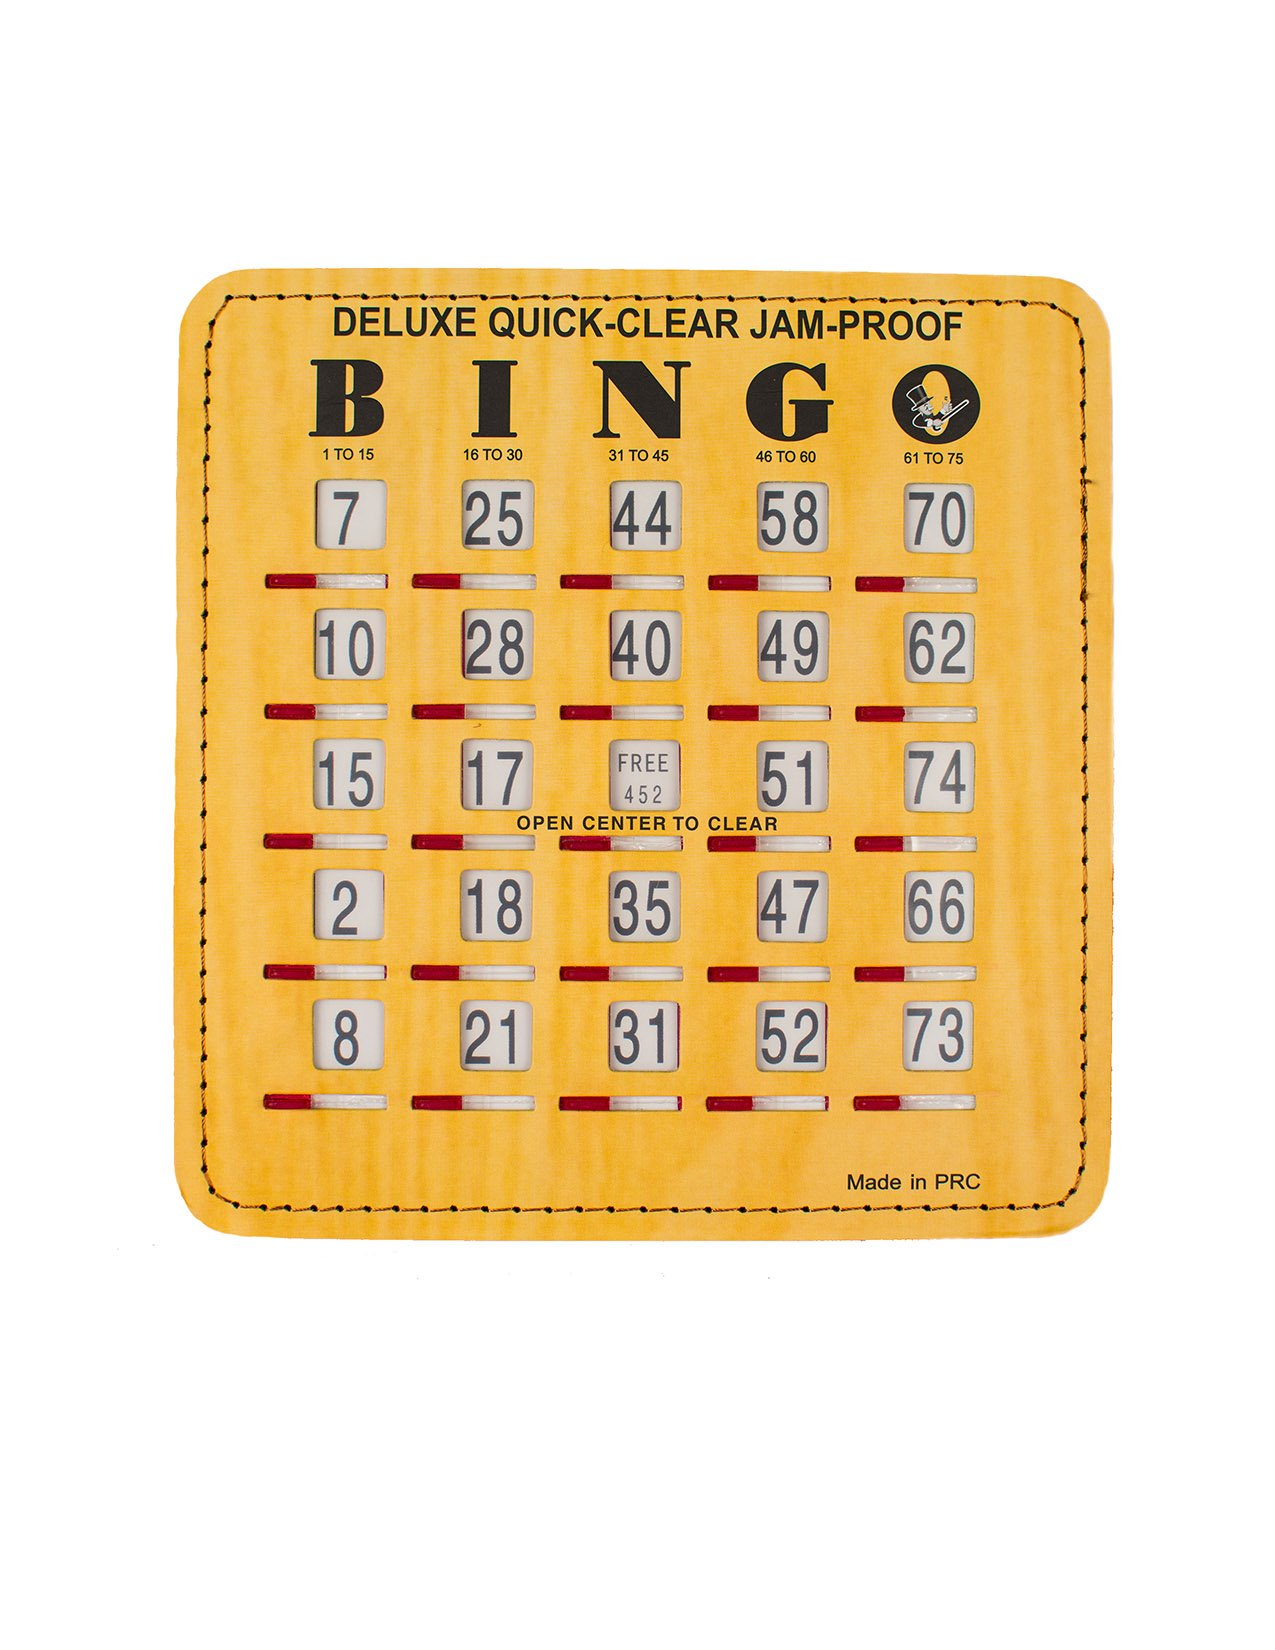 Deluxe Quick Clear Jam Proof Bingo Shutter Cards, 100 count by Mr. Chips, Inc